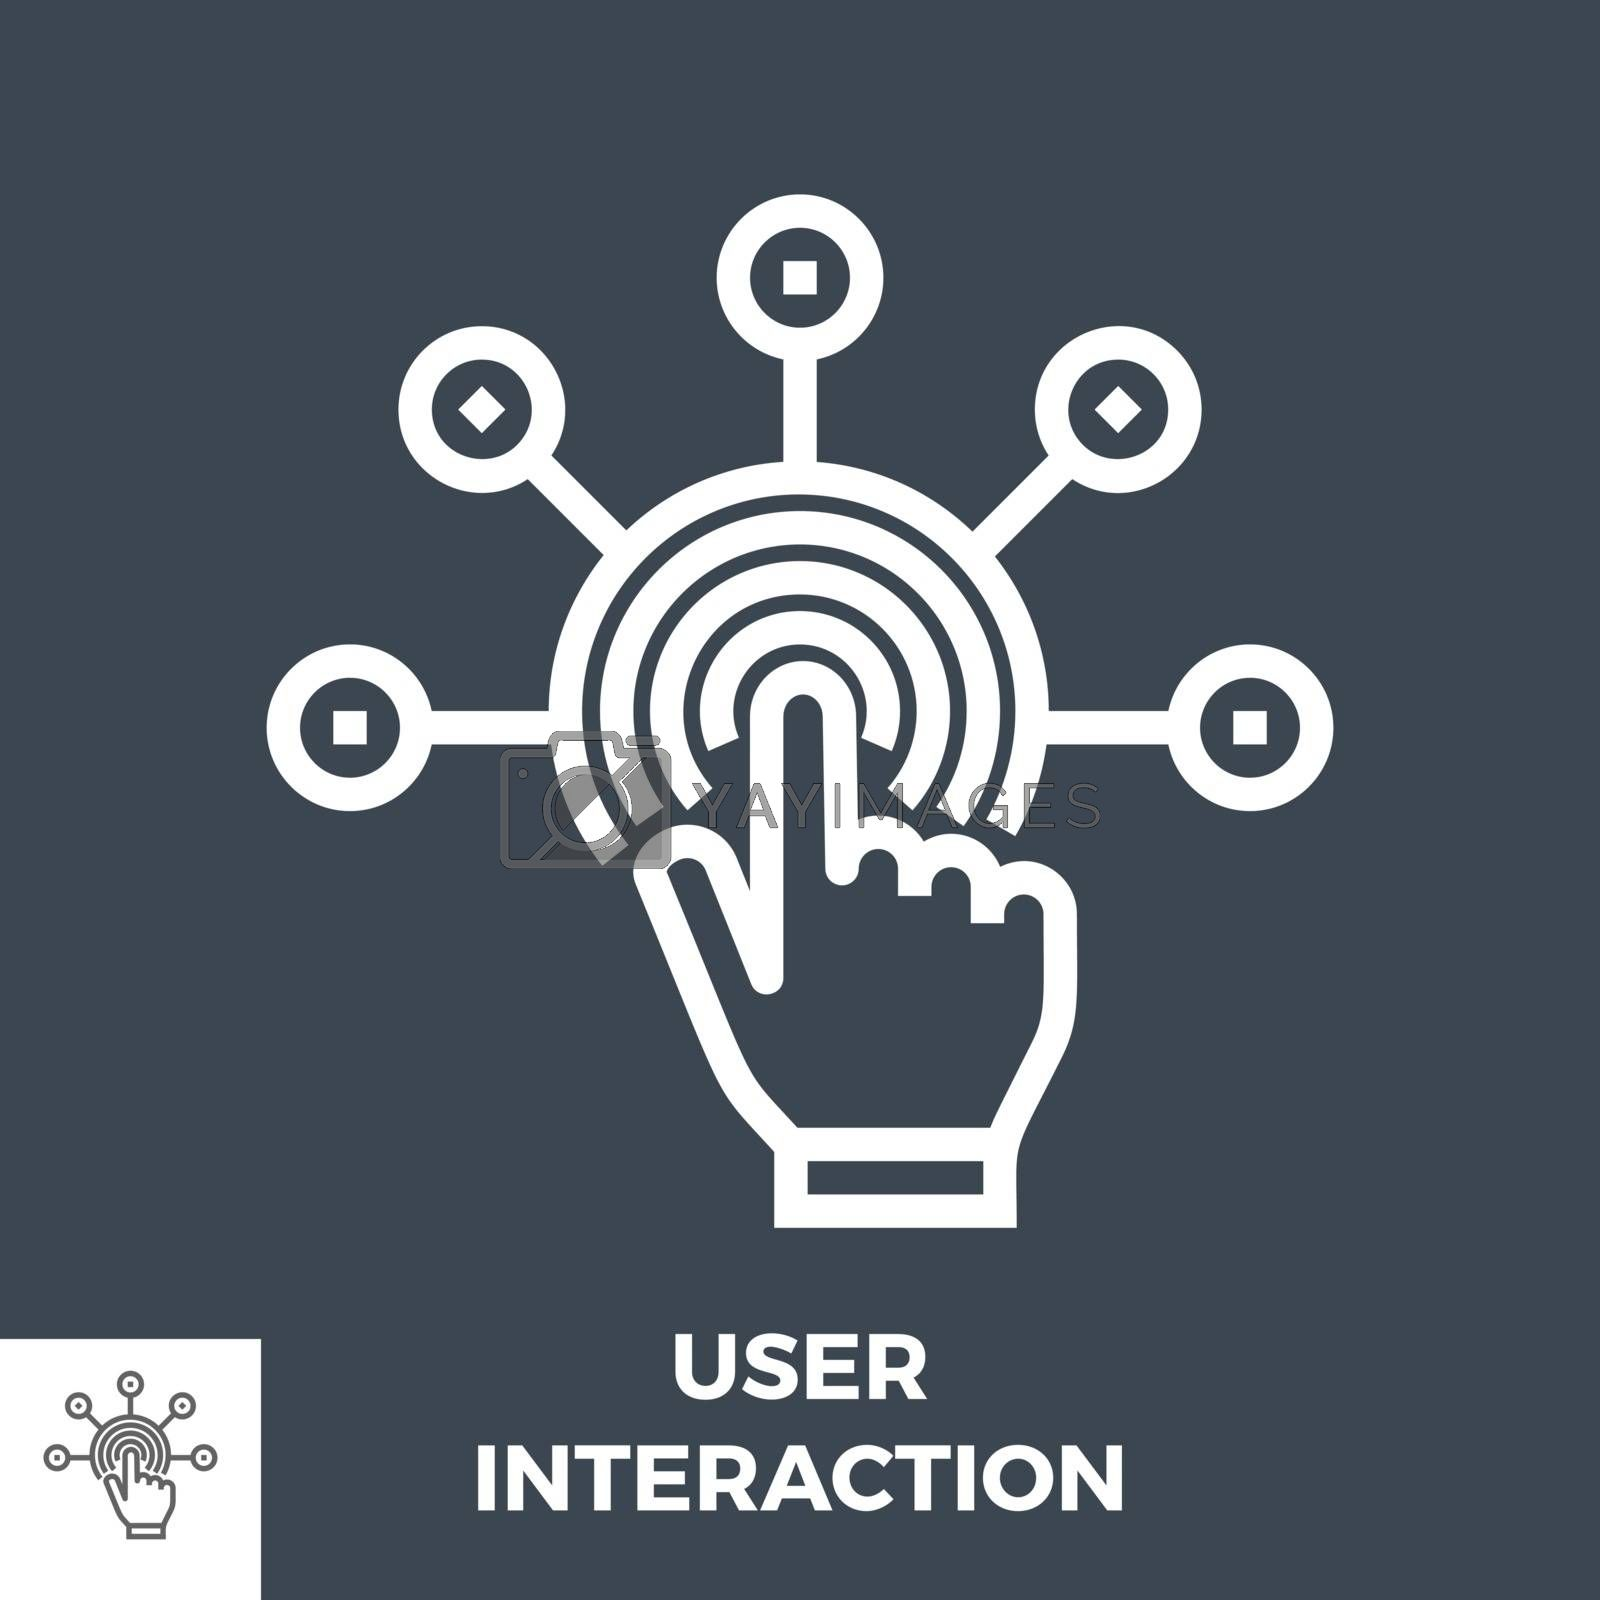 User Interaction Thin Line Vector Icon Isolated on the Black Background.